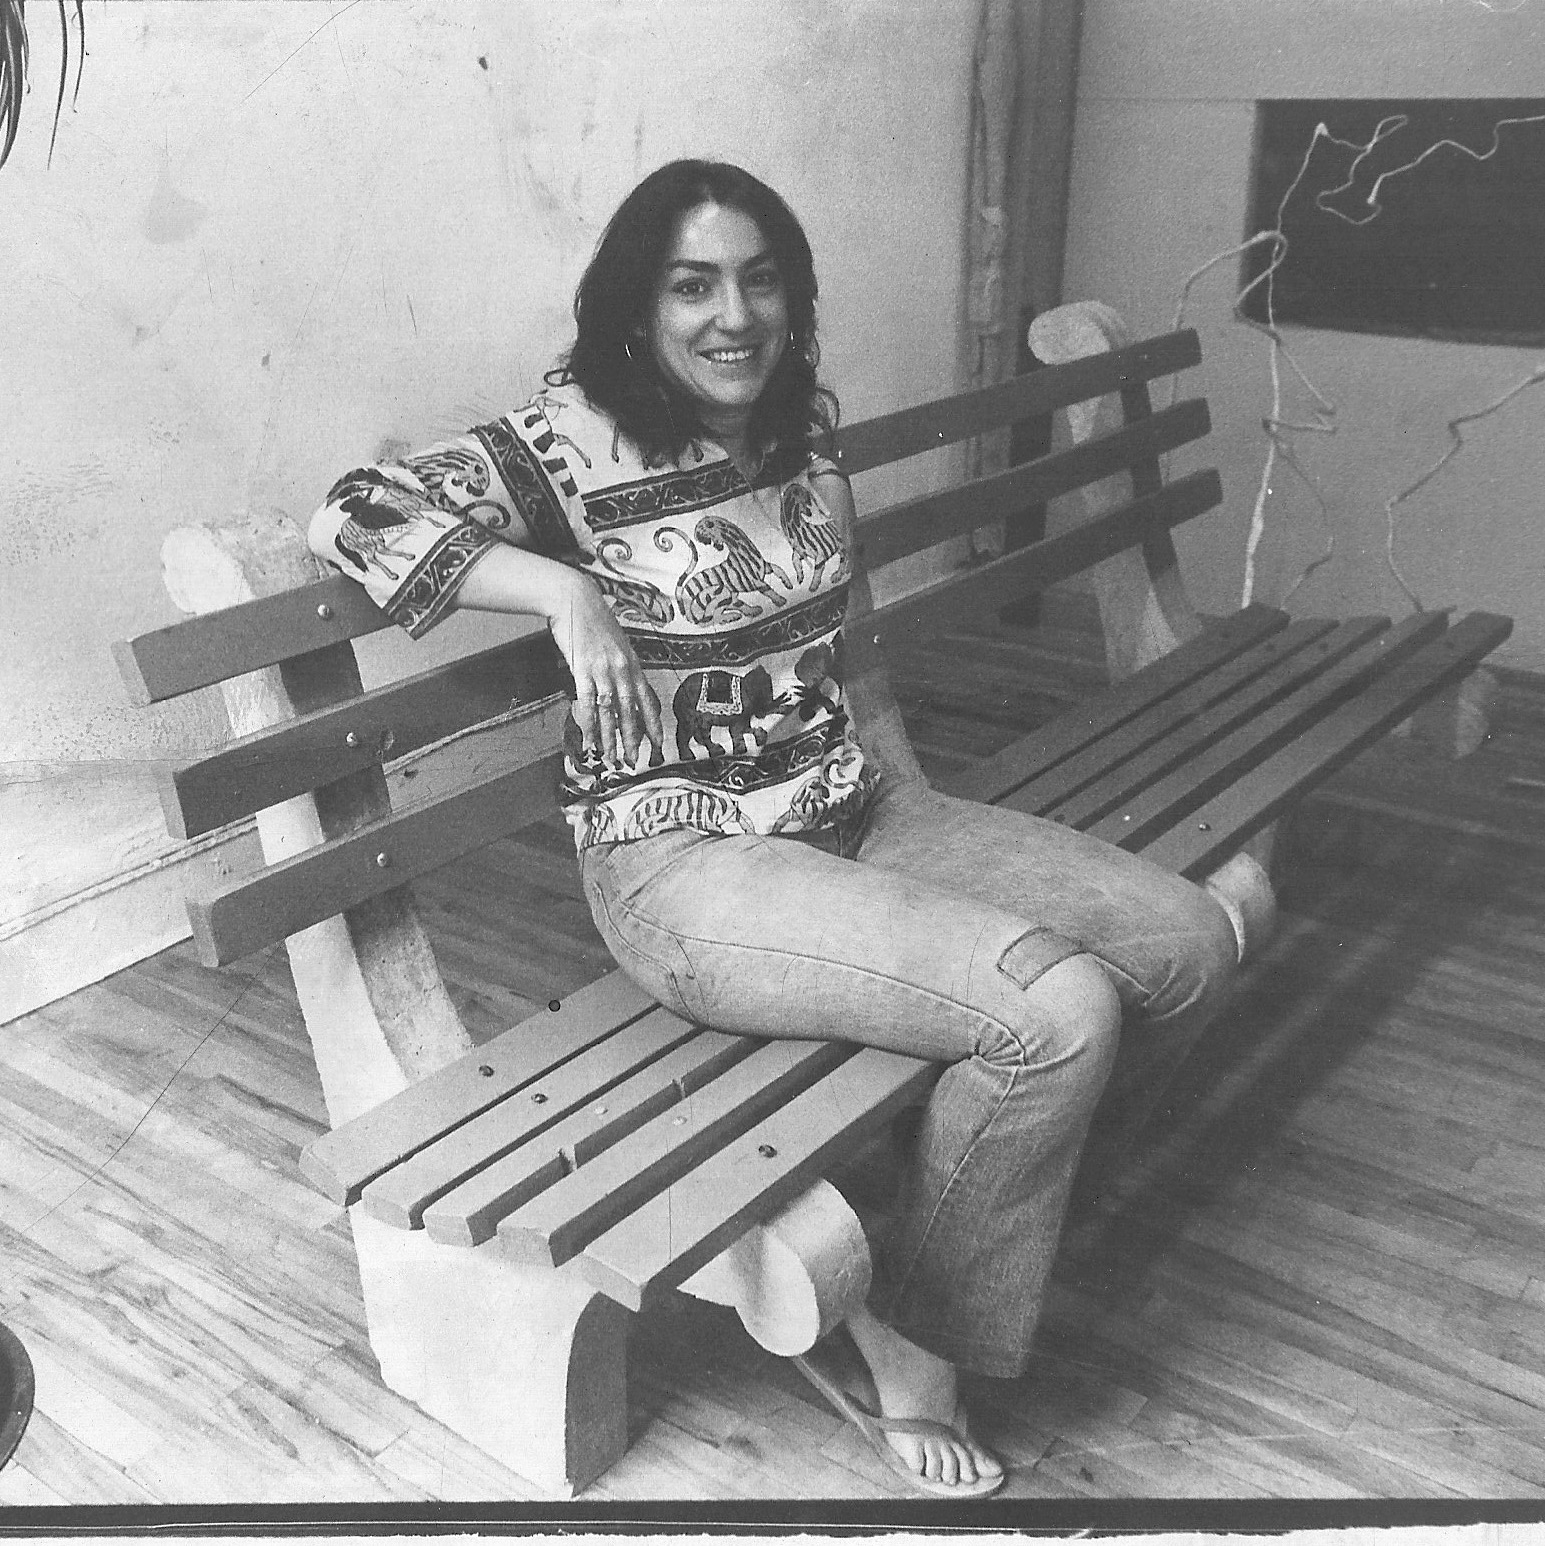 1974. Photo from Village Voice article featuring the Replicas of NYC Park Benches that I was building.